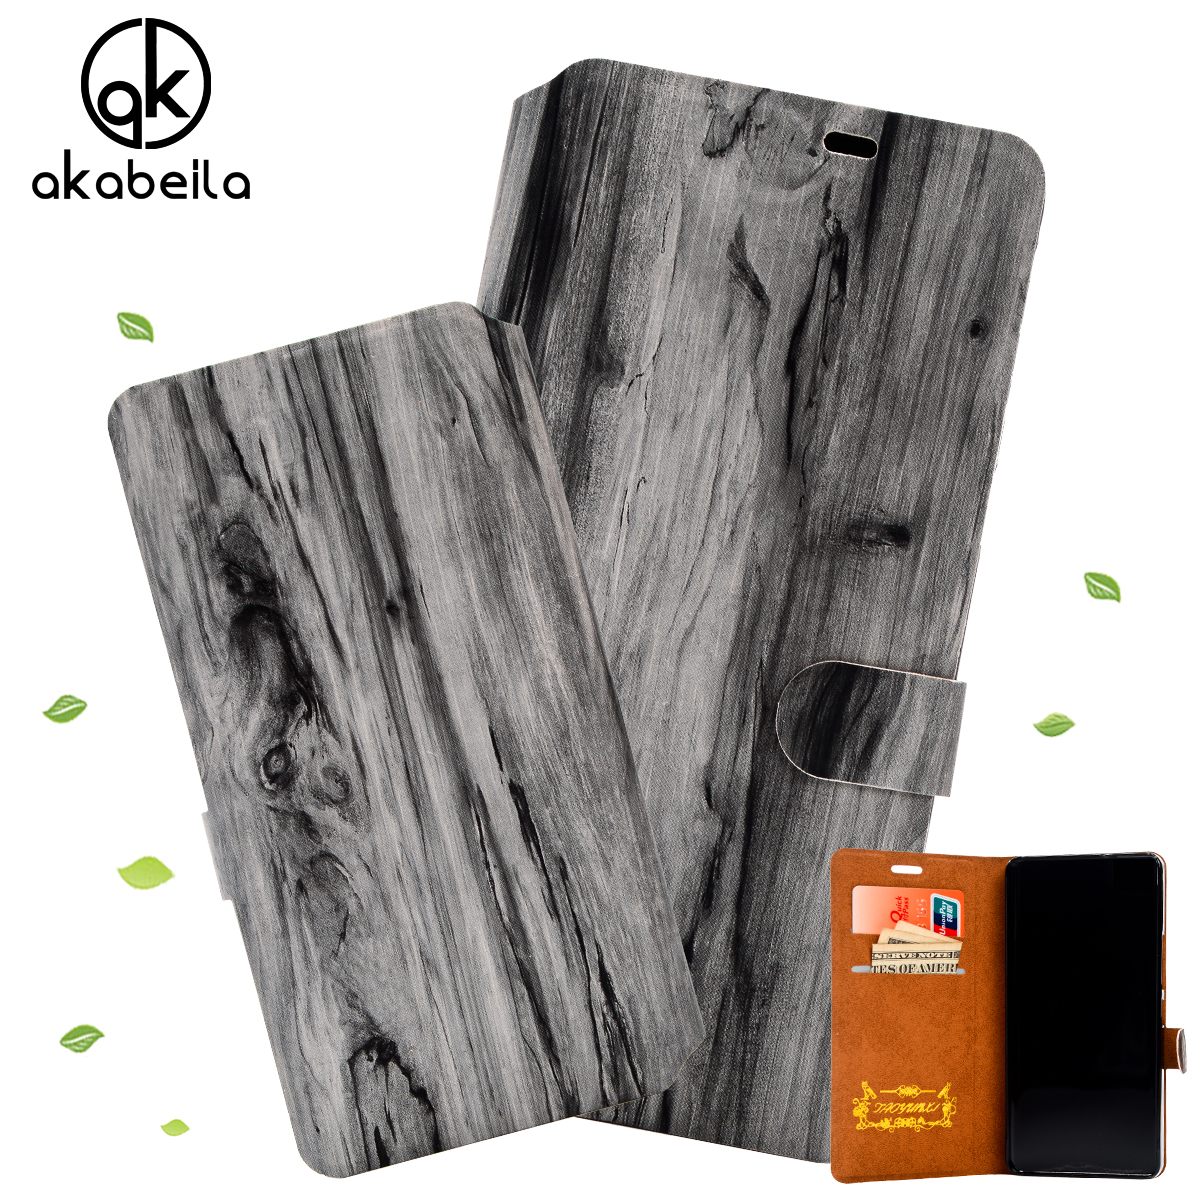 New Come Slim Wood Grain PU Leather Case for Xiaomi Mi Note 5.7 inch Wallet Style Fashion Flip Phone Cover 6 Colors Available